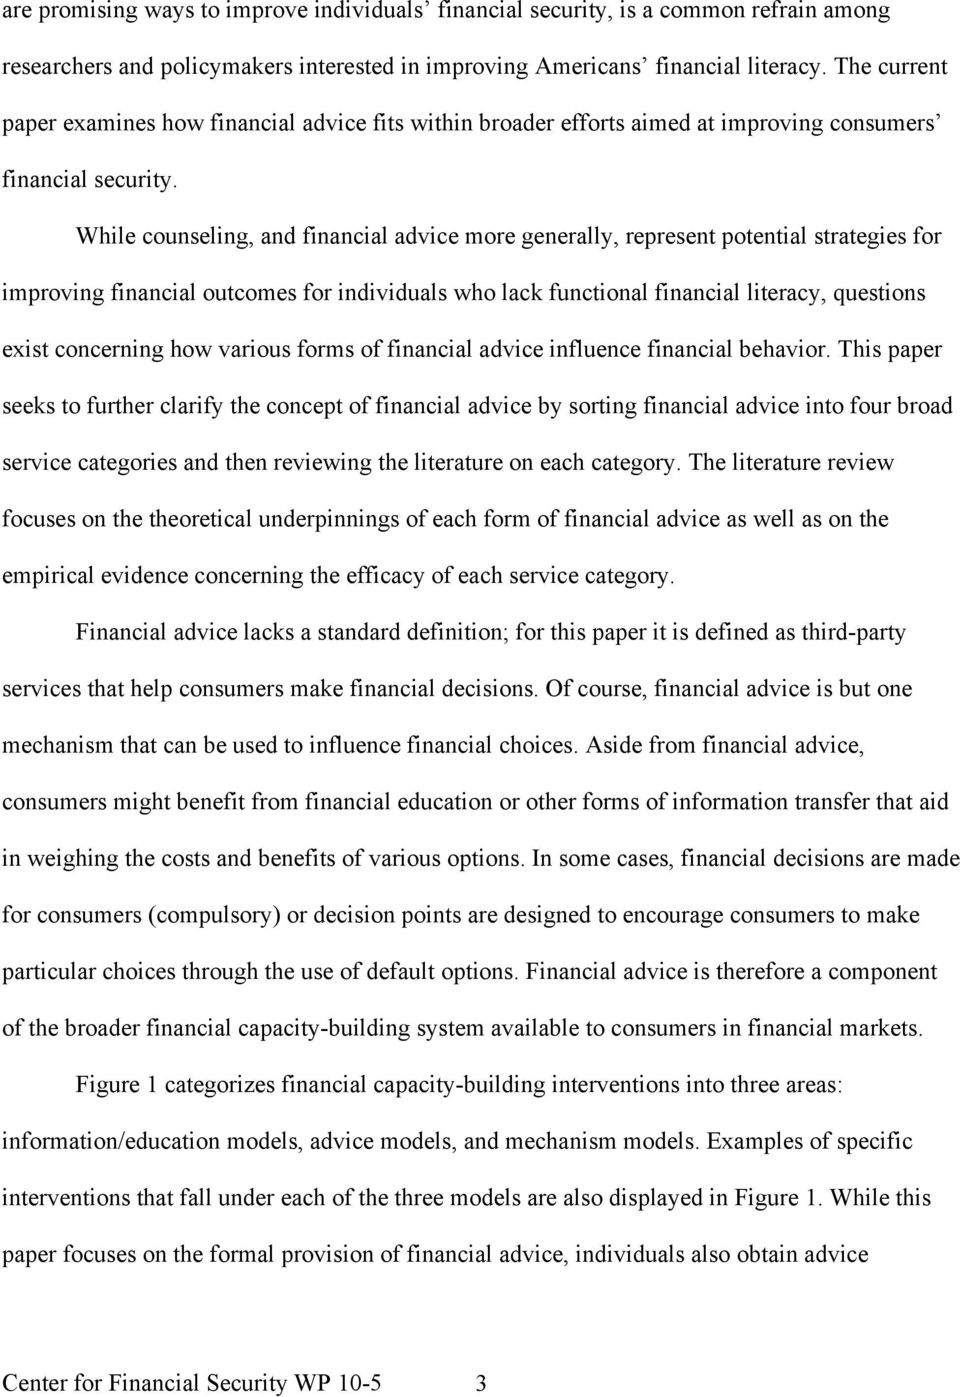 While counseling, and financial advice more generally, represent potential strategies for improving financial outcomes for individuals who lack functional financial literacy, questions exist